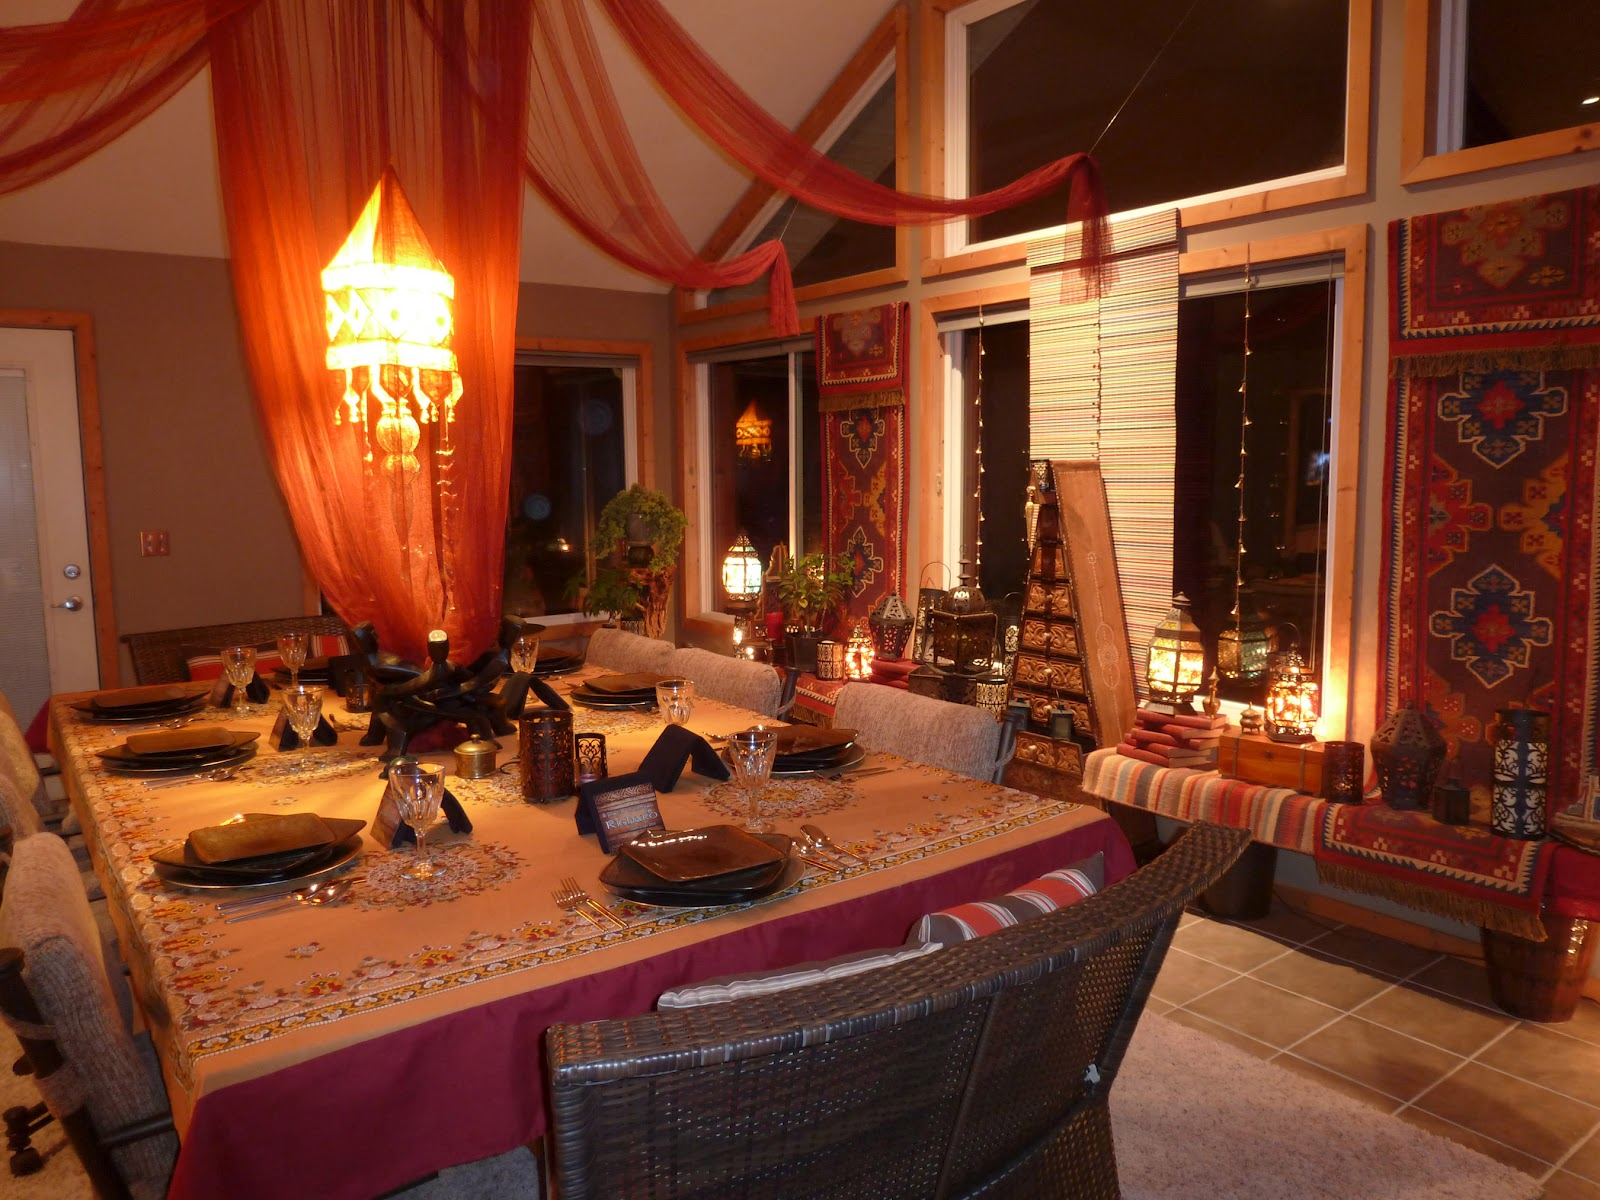 33 exquisite moroccan dining room designs digsdigs for Exquisite interior designs